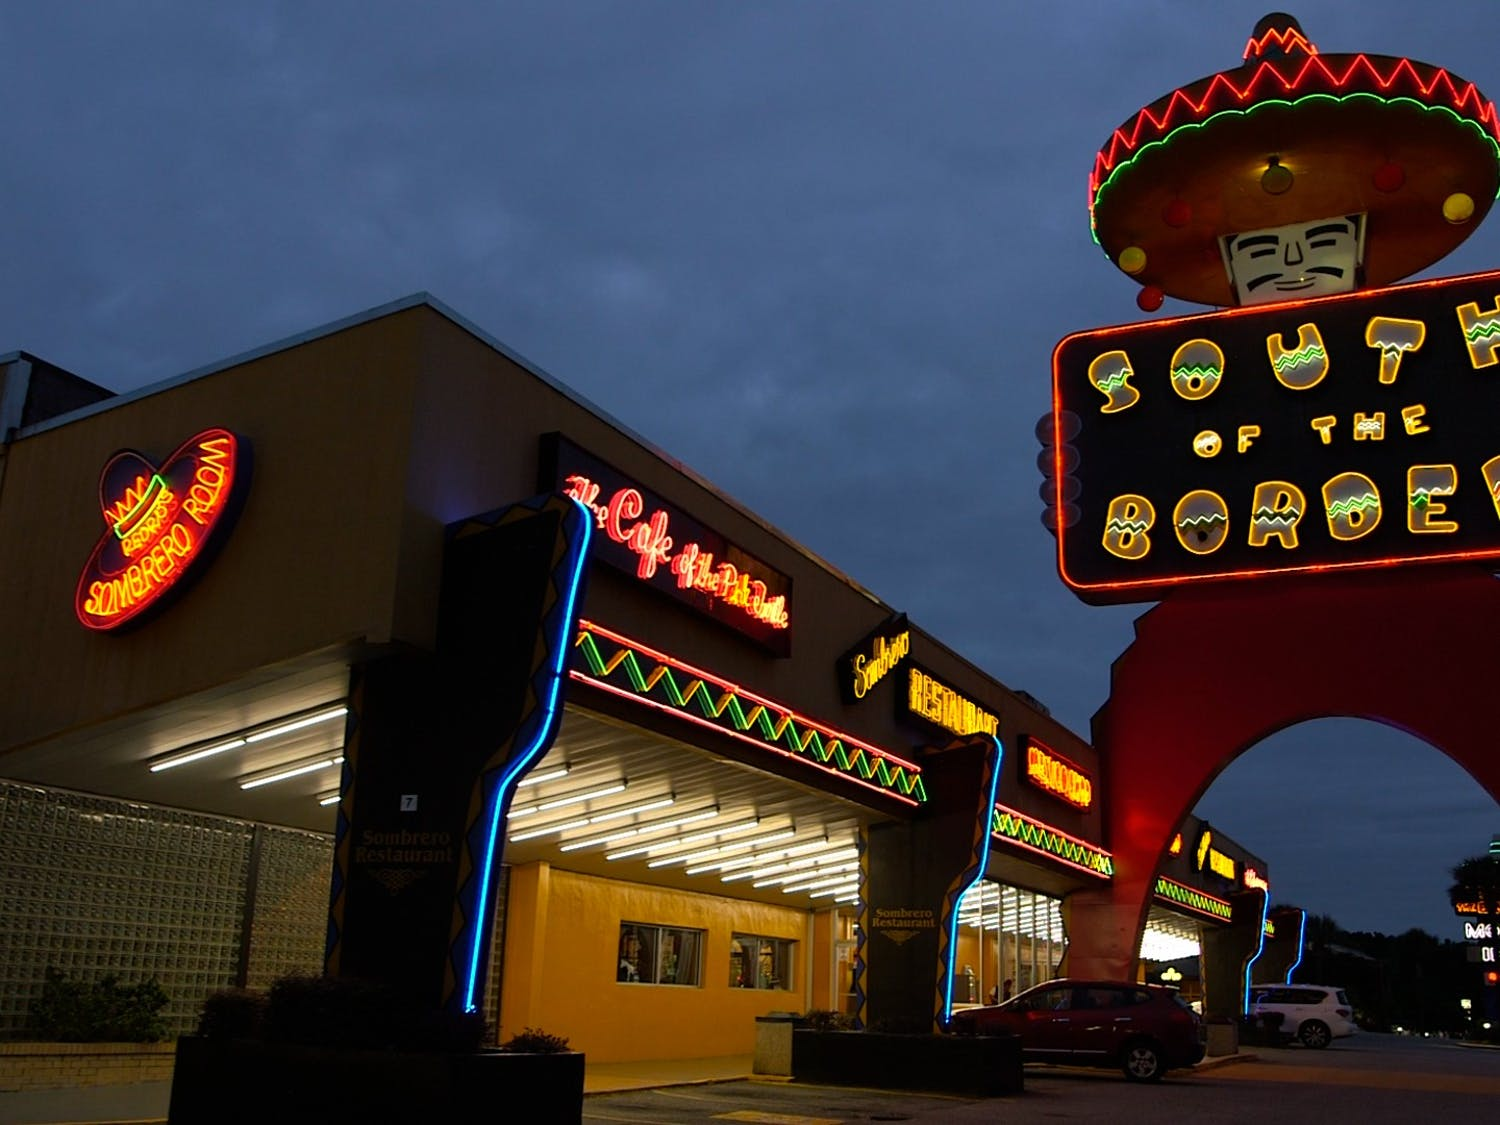 """South of the Border's welcome sign, known as """"The Big Fellah."""" Photo courtesy of Julianna Villarosa and Derek Torres."""